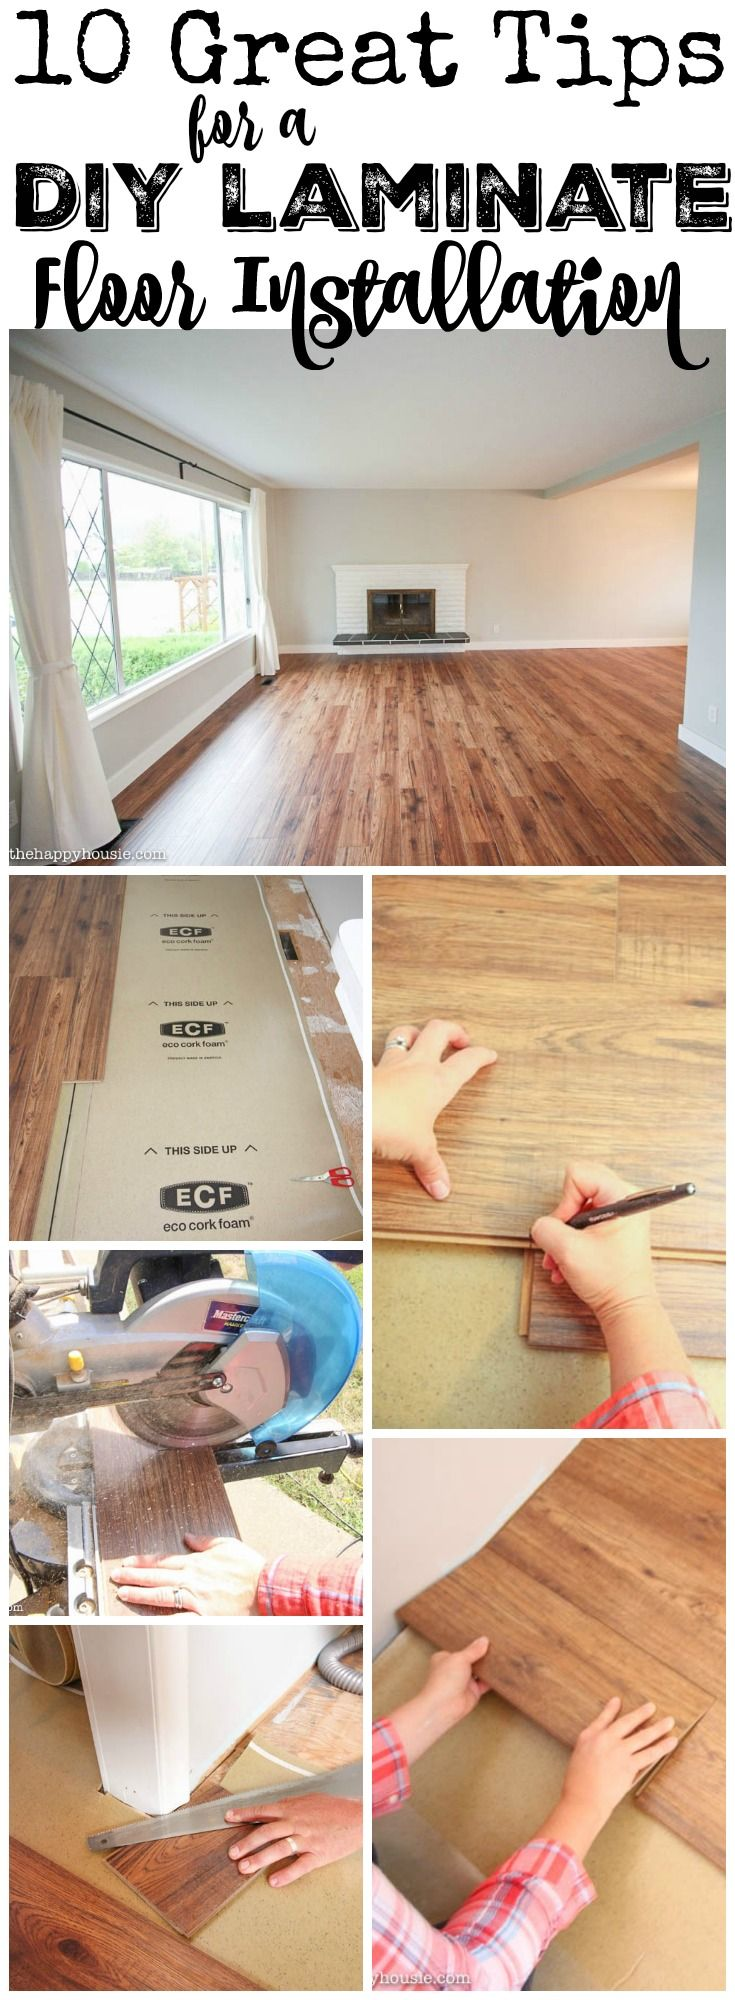 10 Great Tips For A Diy Laminate Floor Installation At Thehappyhousie Com Diy Flooring Home Improvement Projects Floor Installation